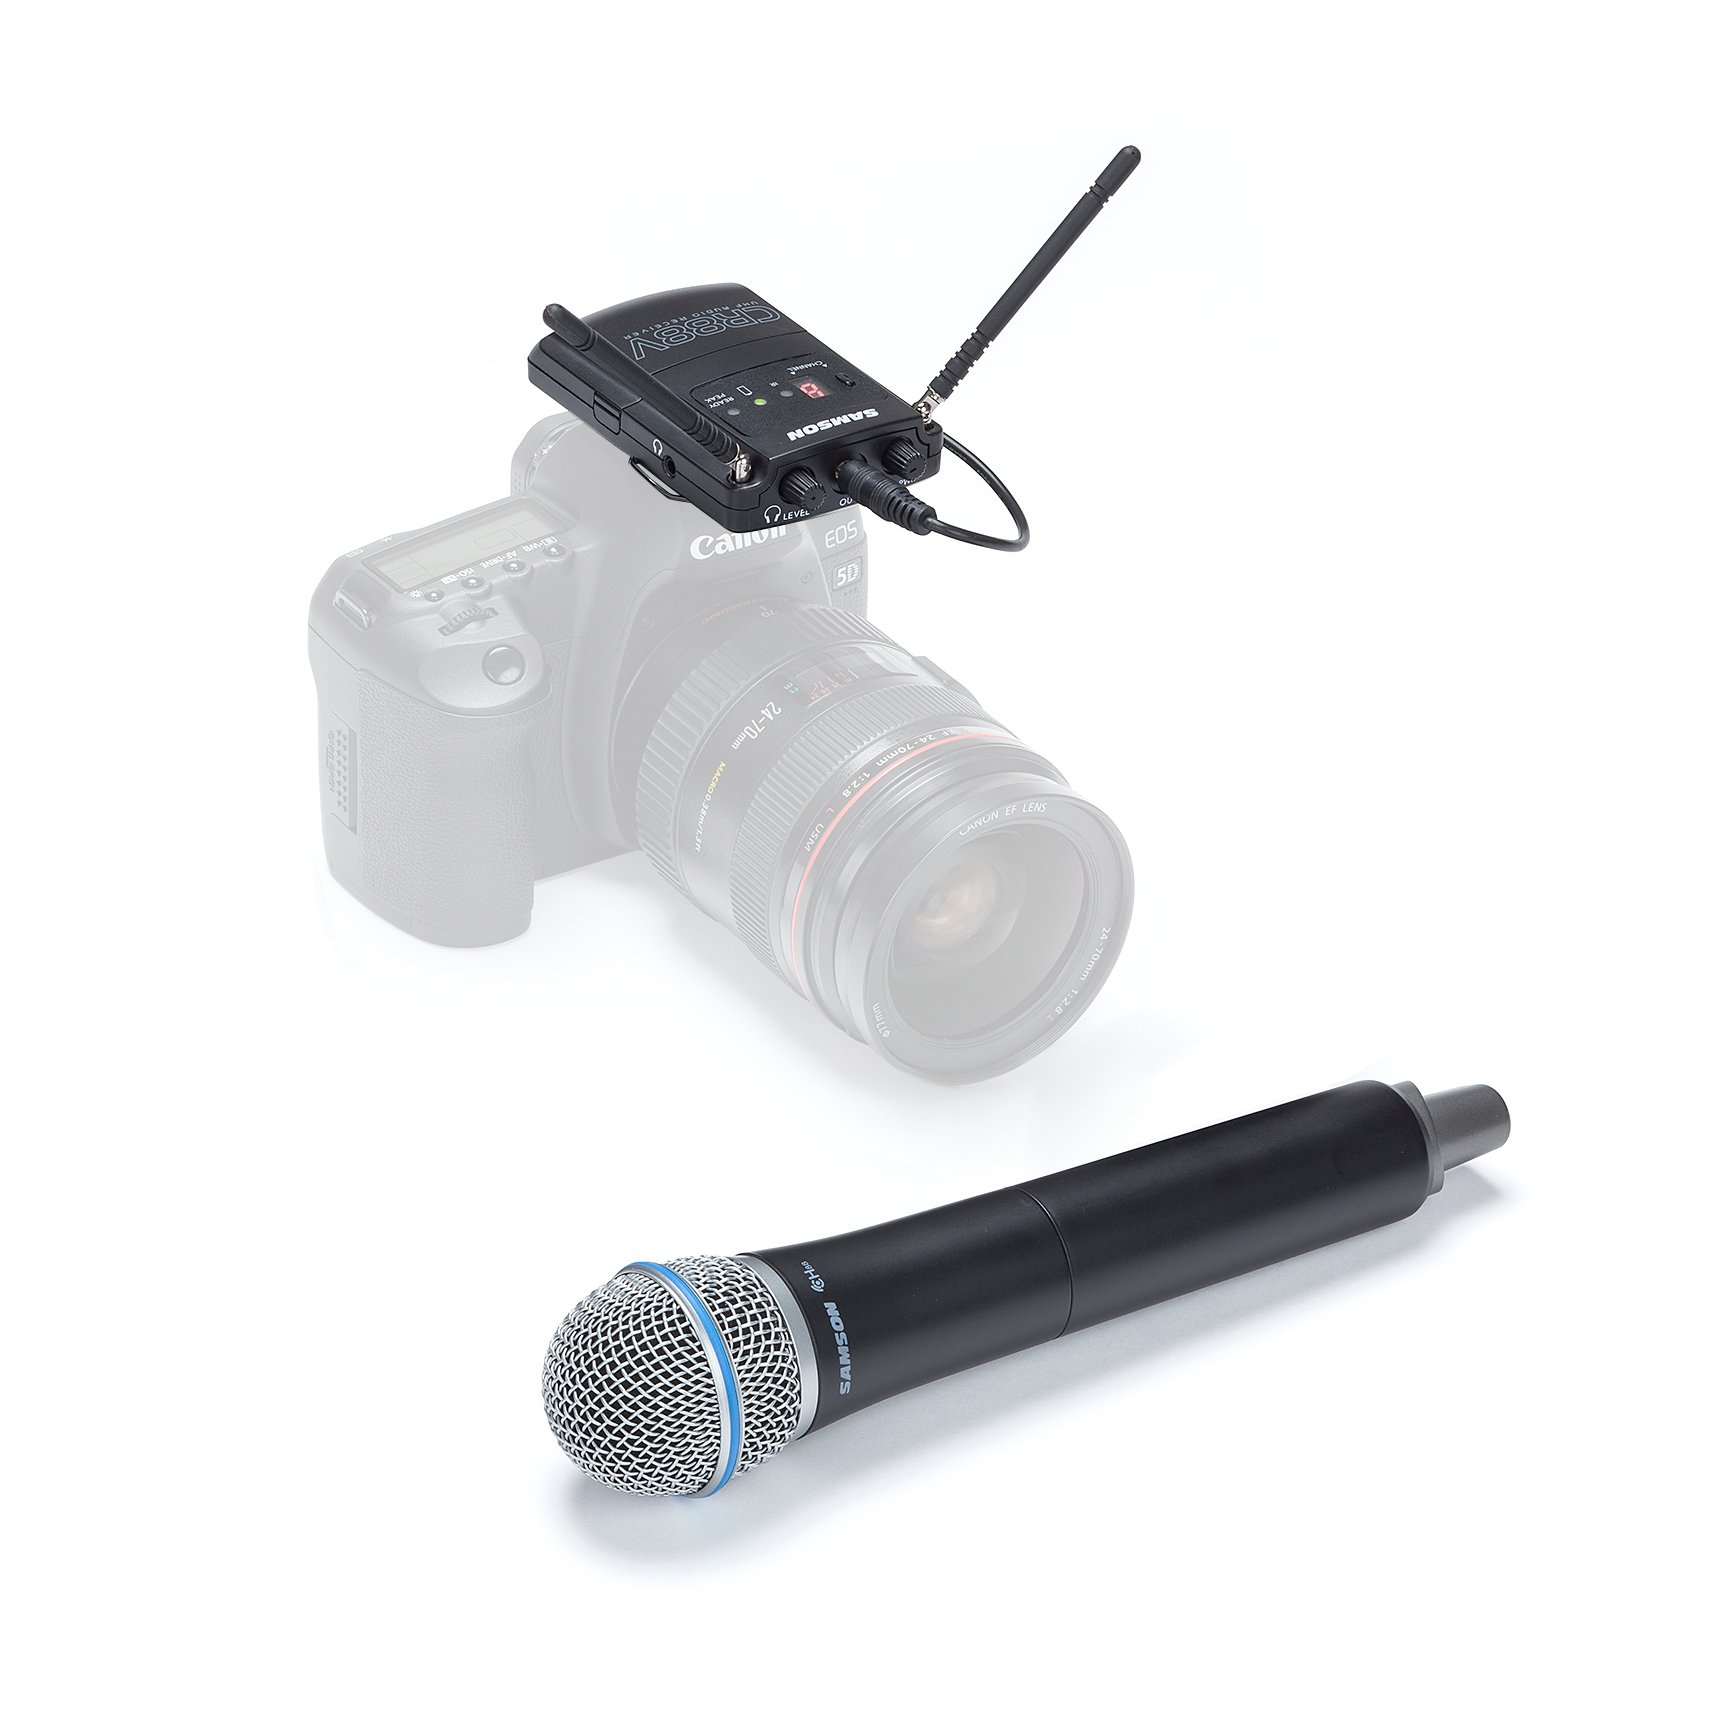 D Band Wireless Microphone System with Q8 Handheld Microphone/Transmitter